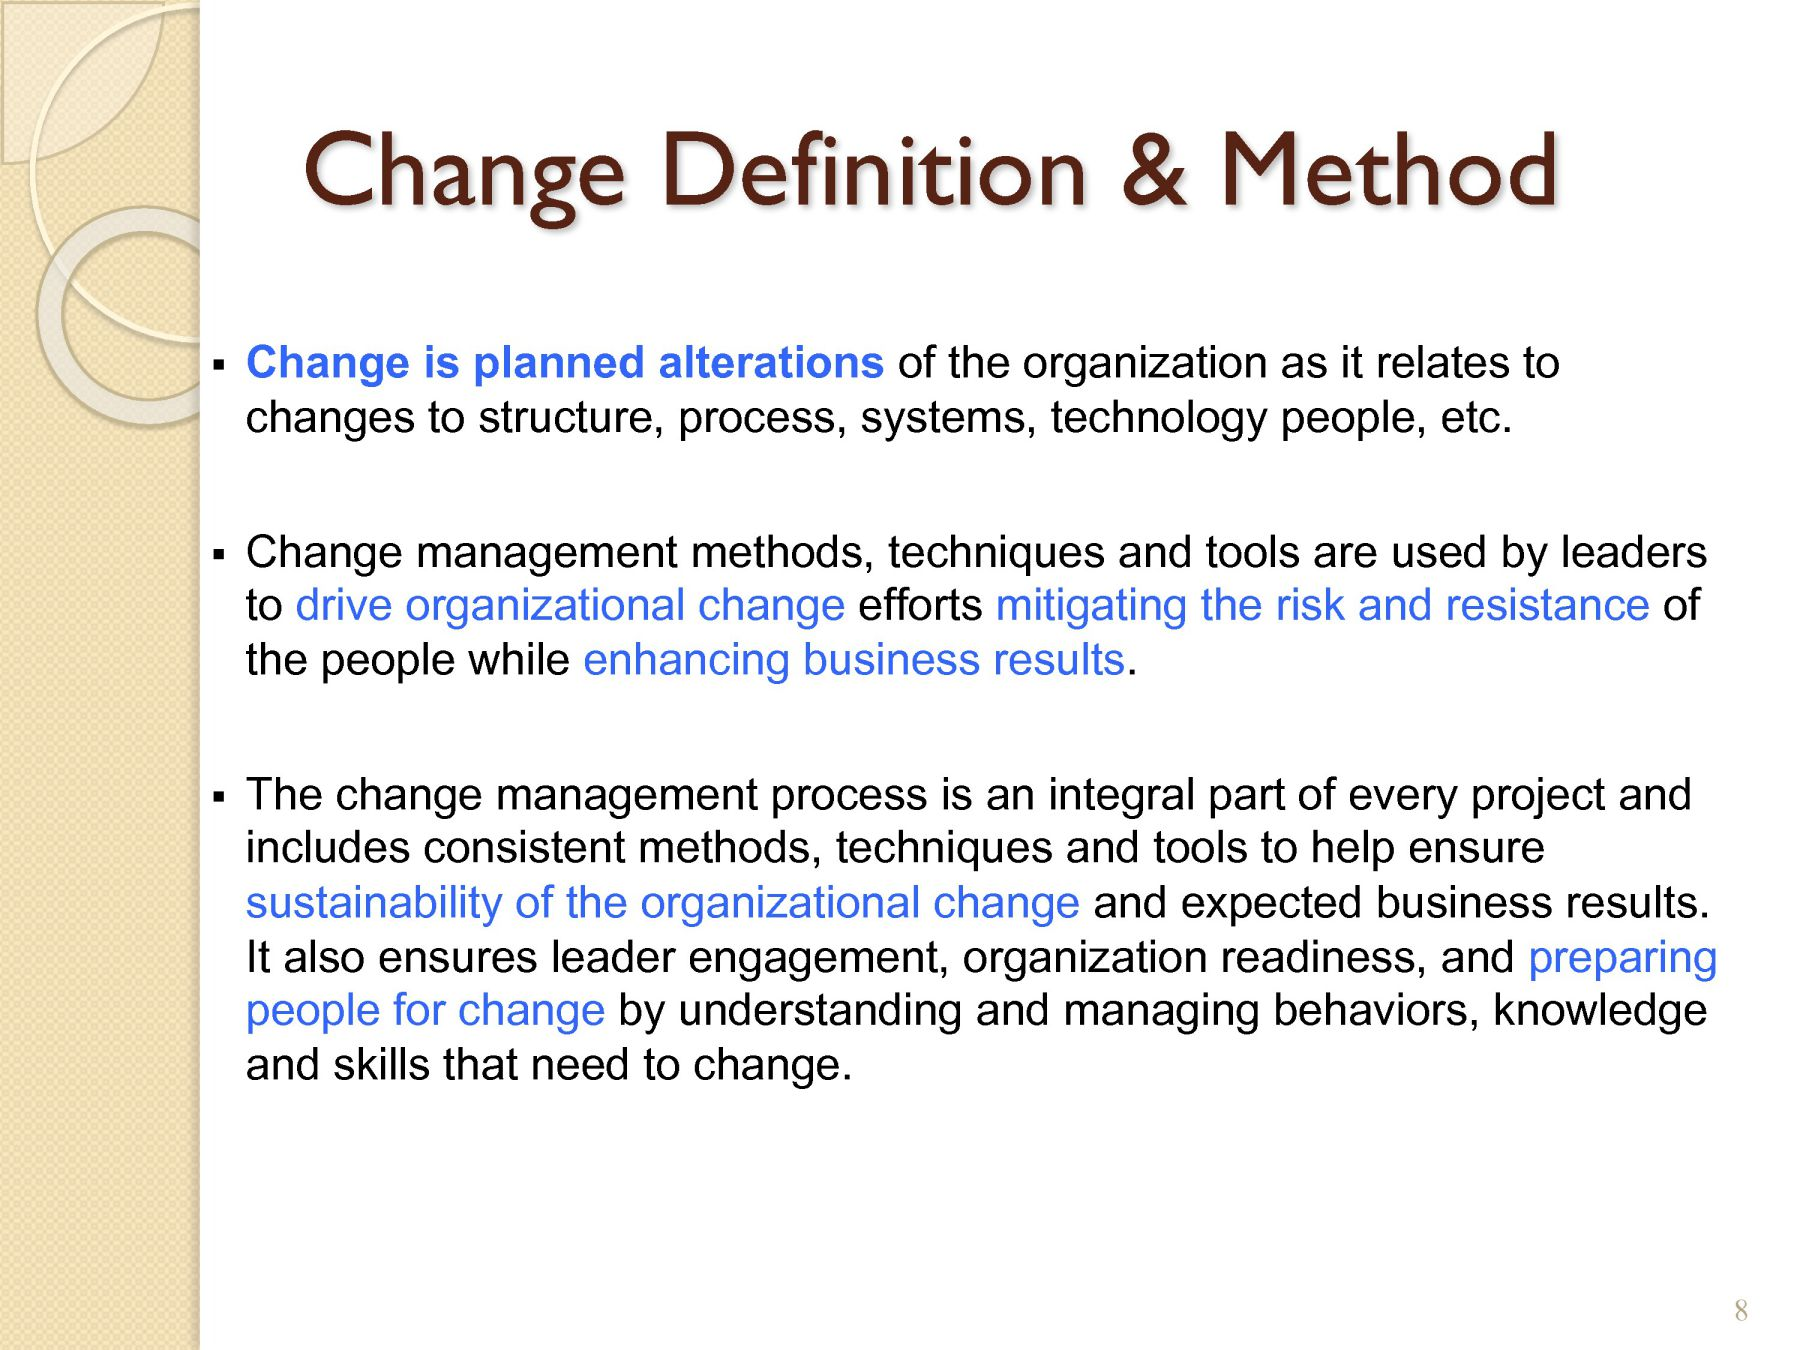 how to prepare for change in an organization